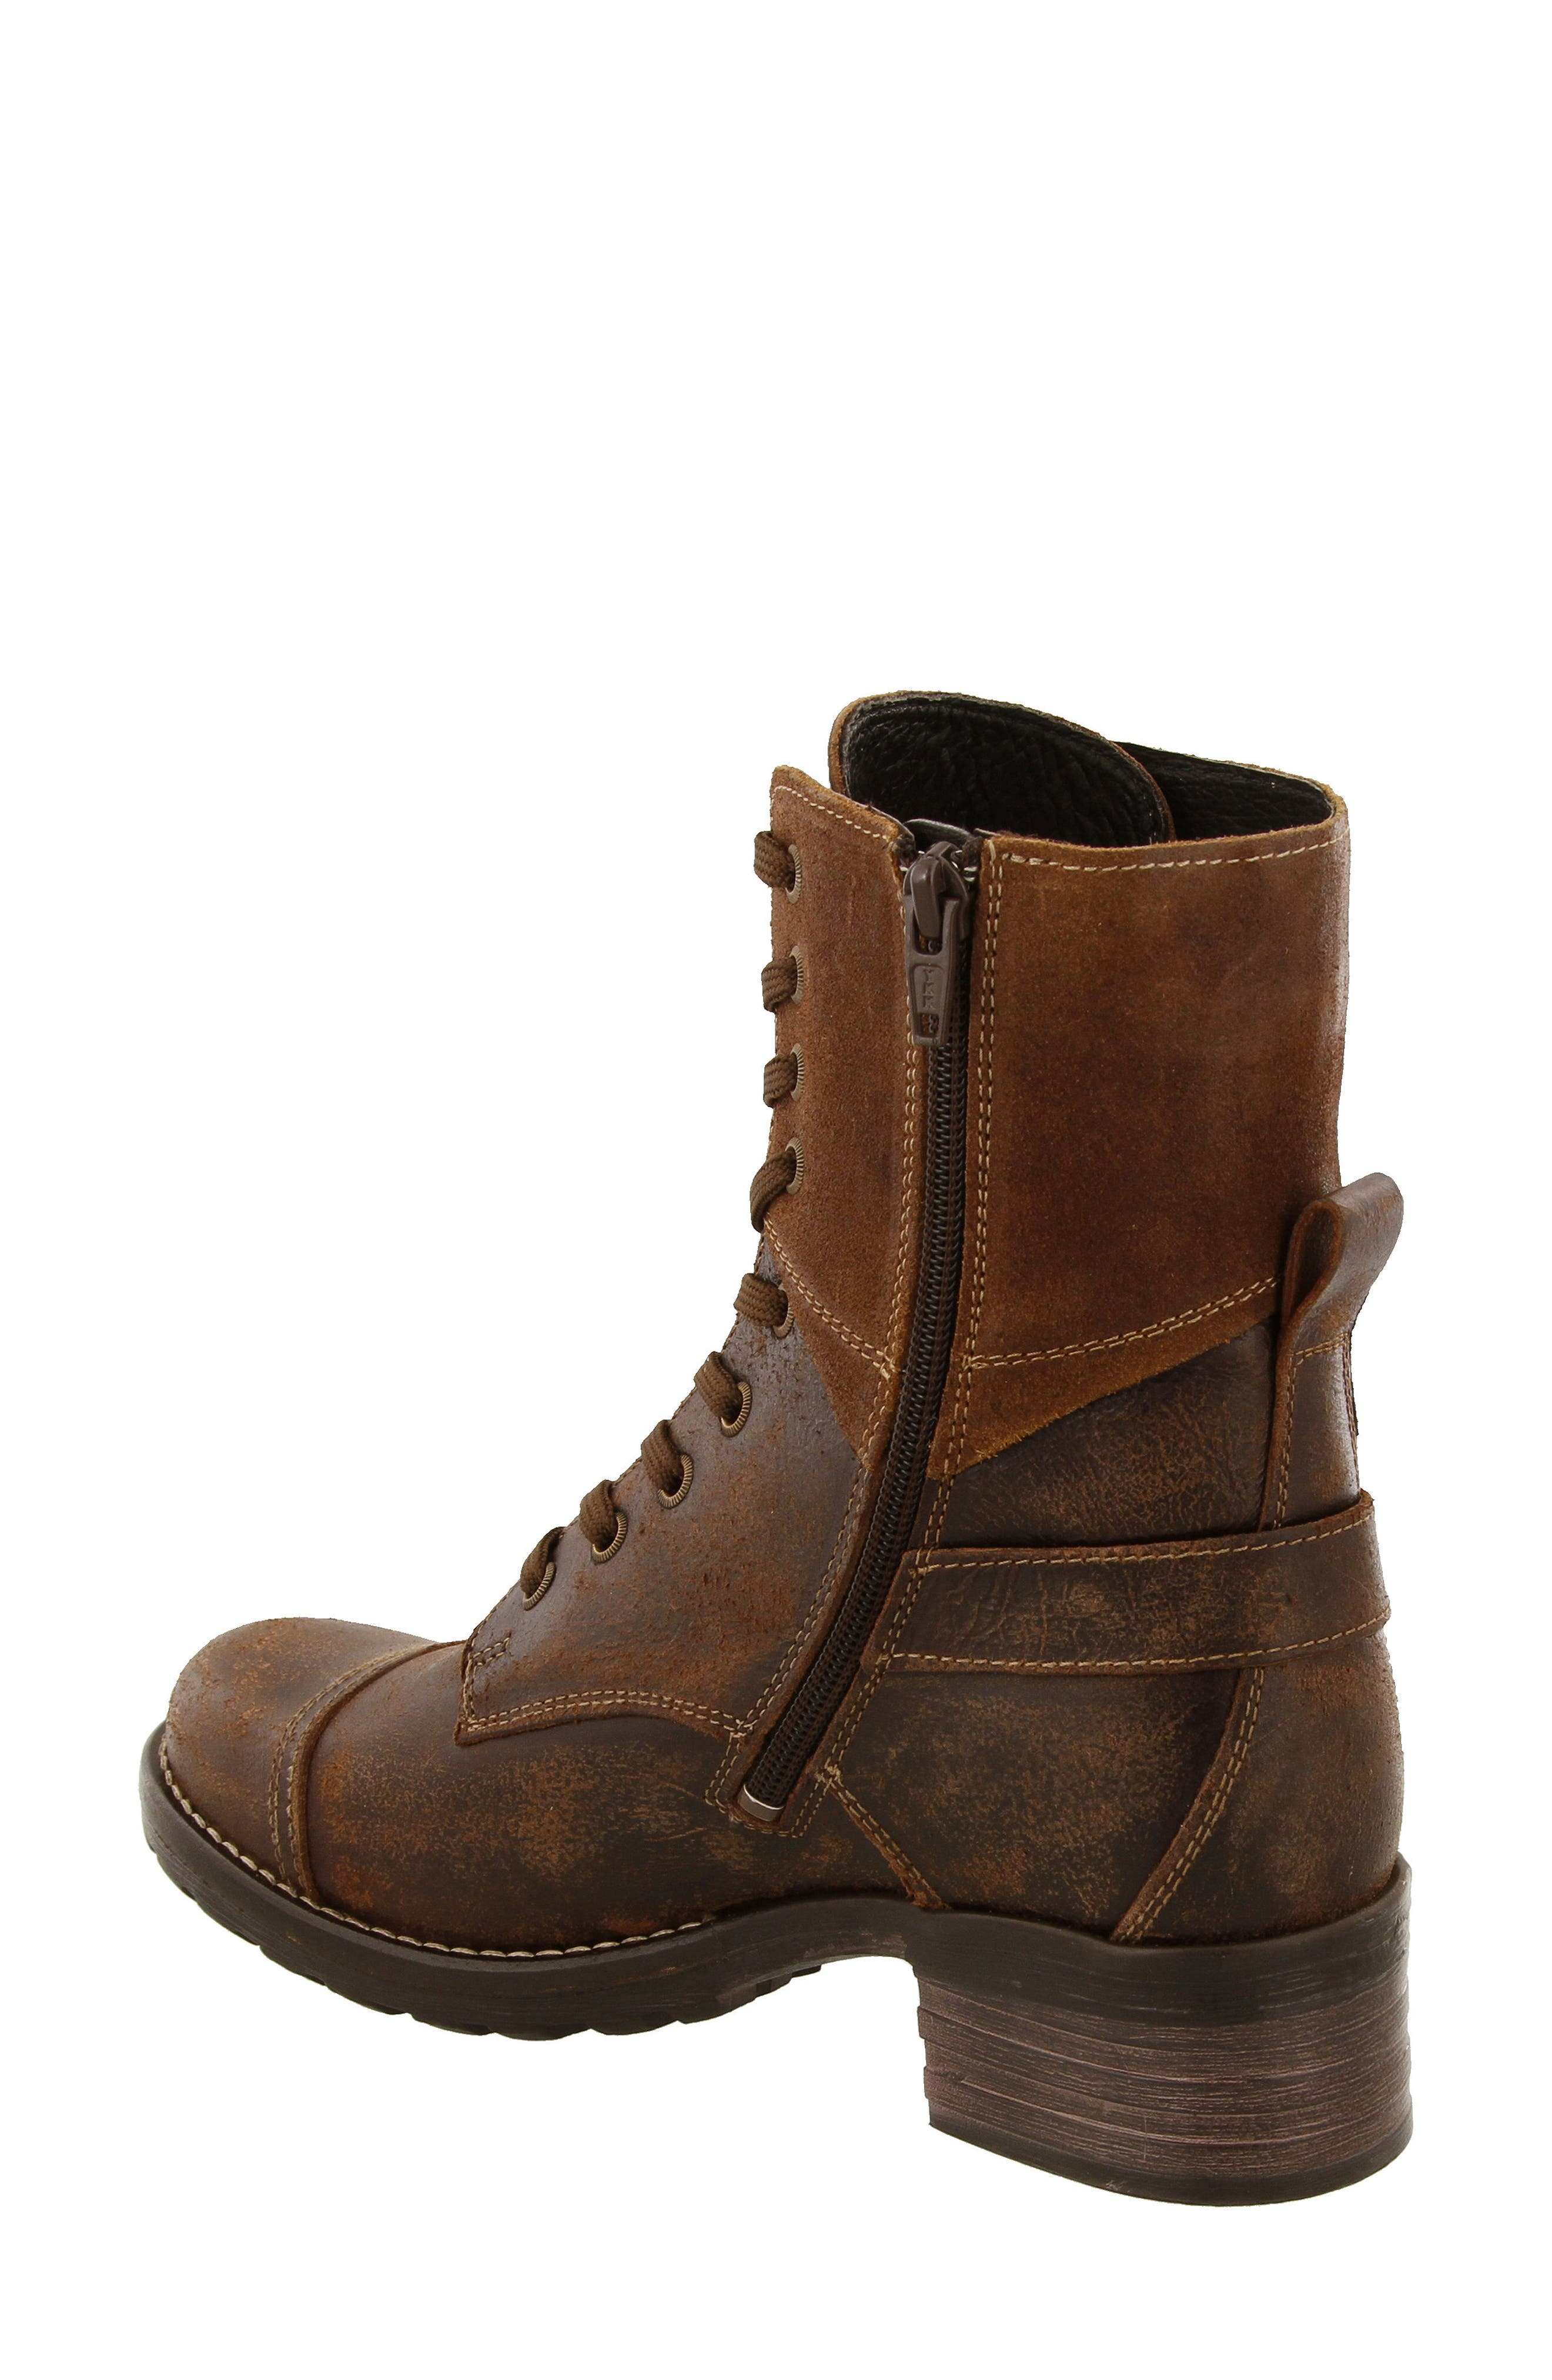 Crave Boot,                             Alternate thumbnail 2, color,                             Brown Leather